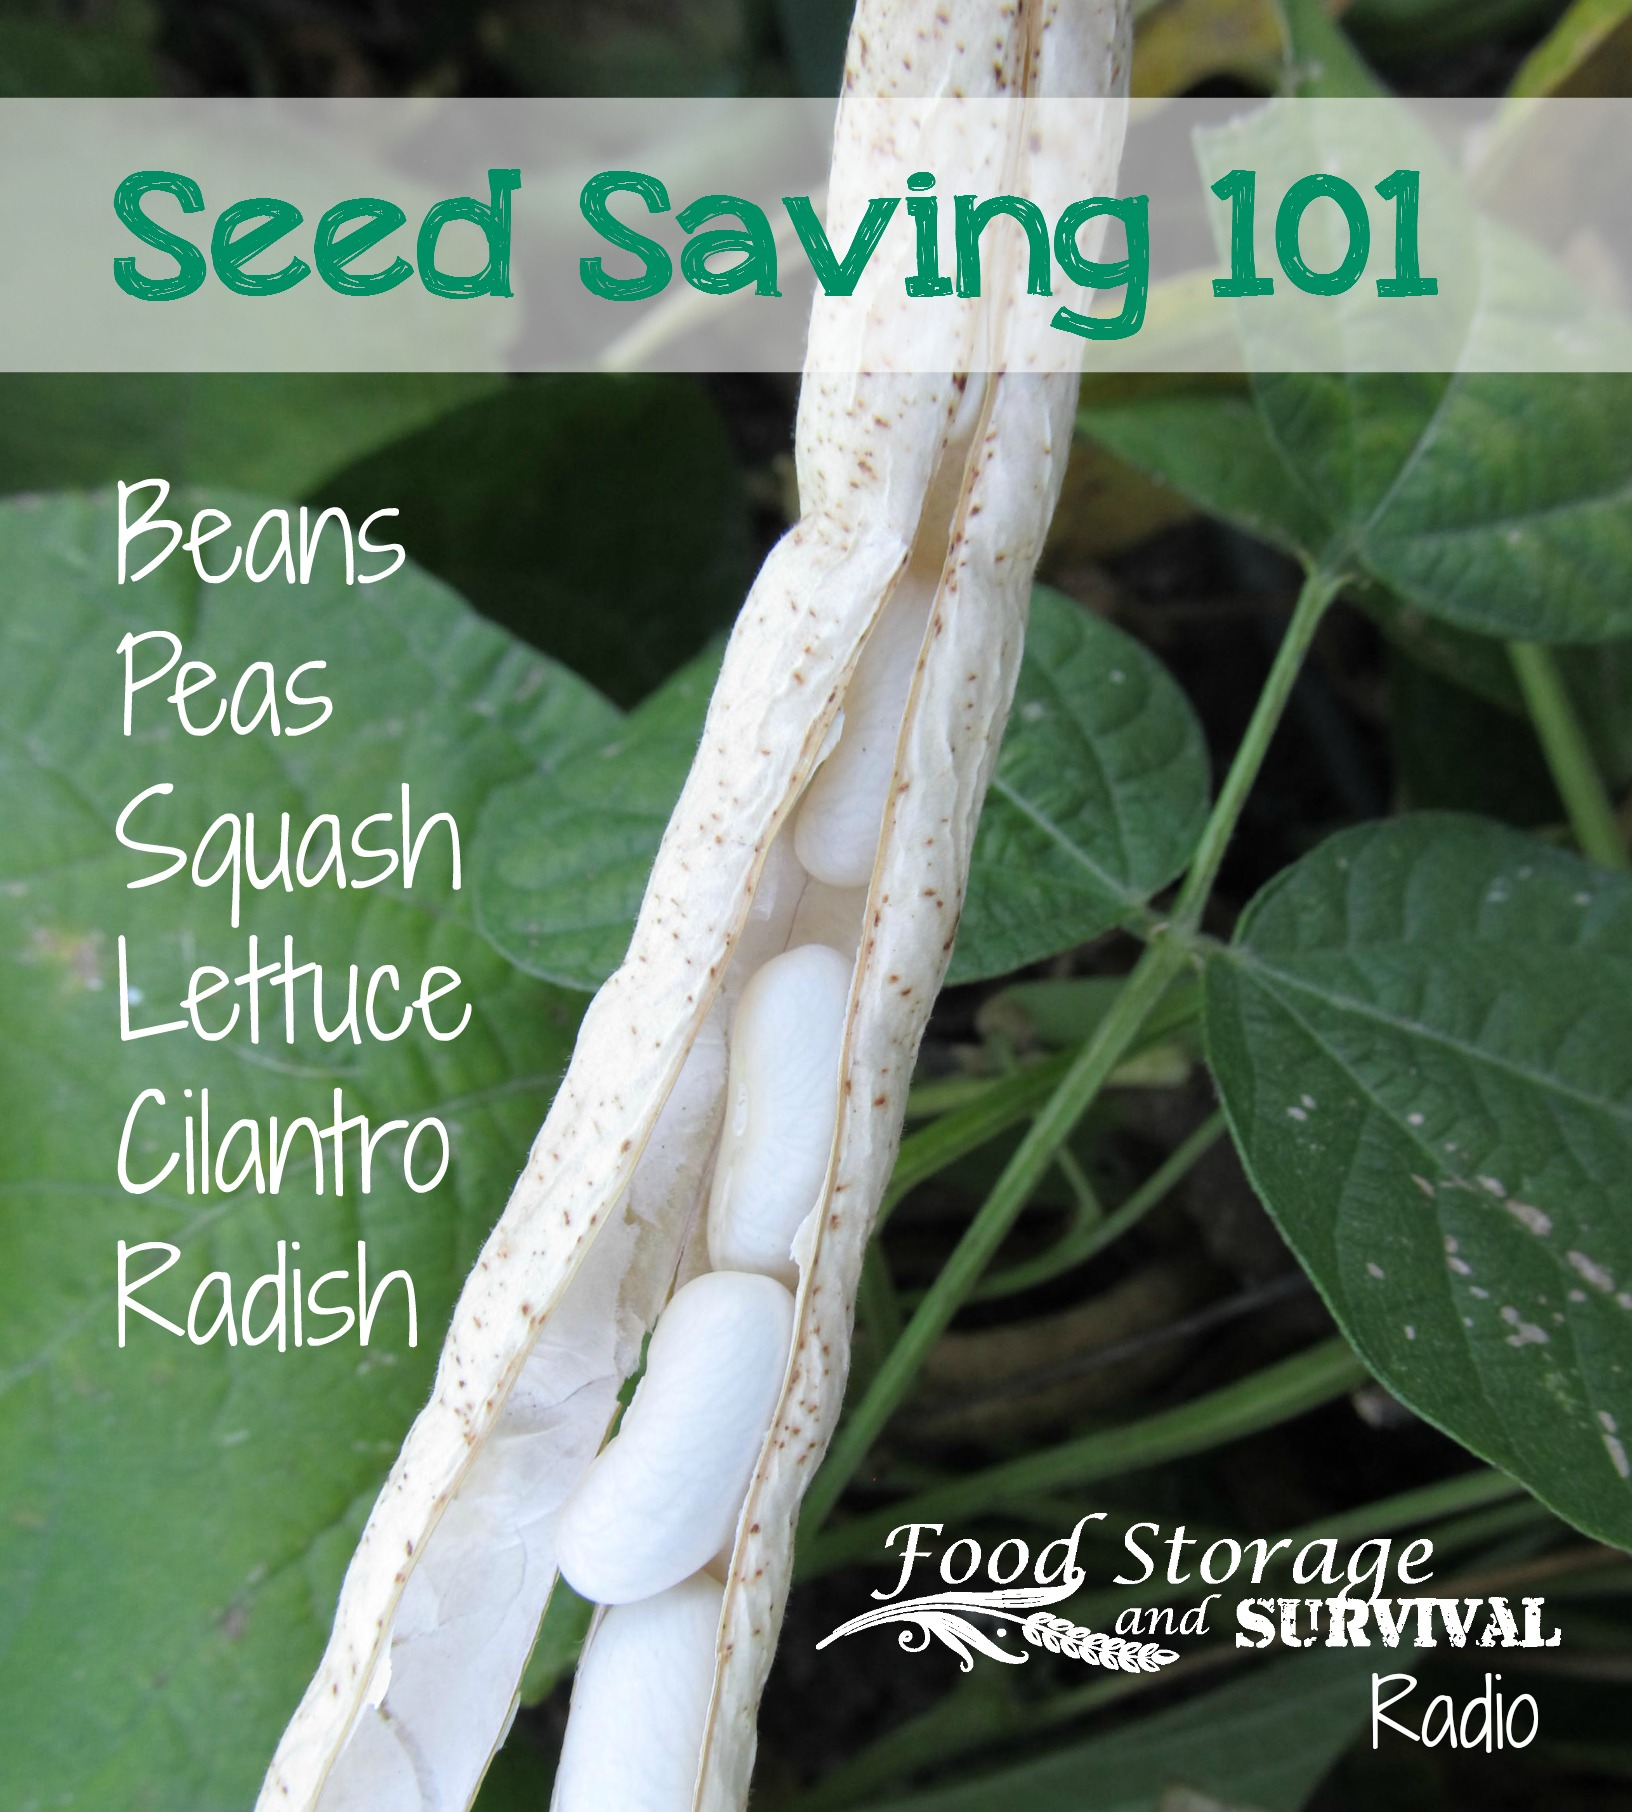 Food Storage and Survival Radio Episode 62: Seed Saving 101